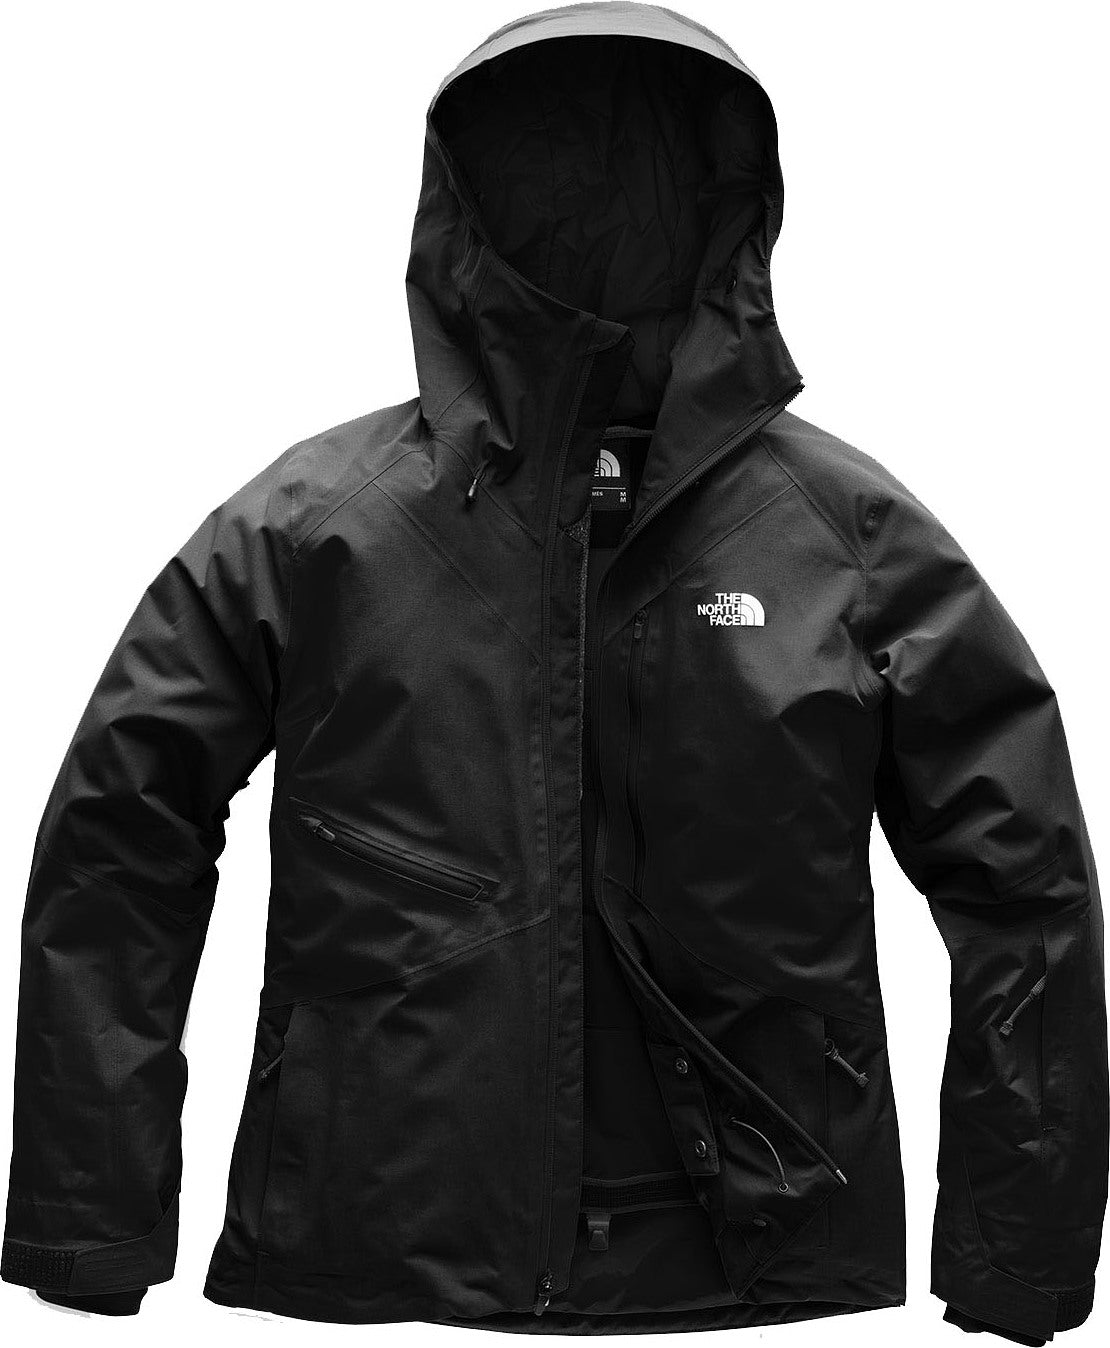 5098f99e2 Lostrail Jacket - Women's